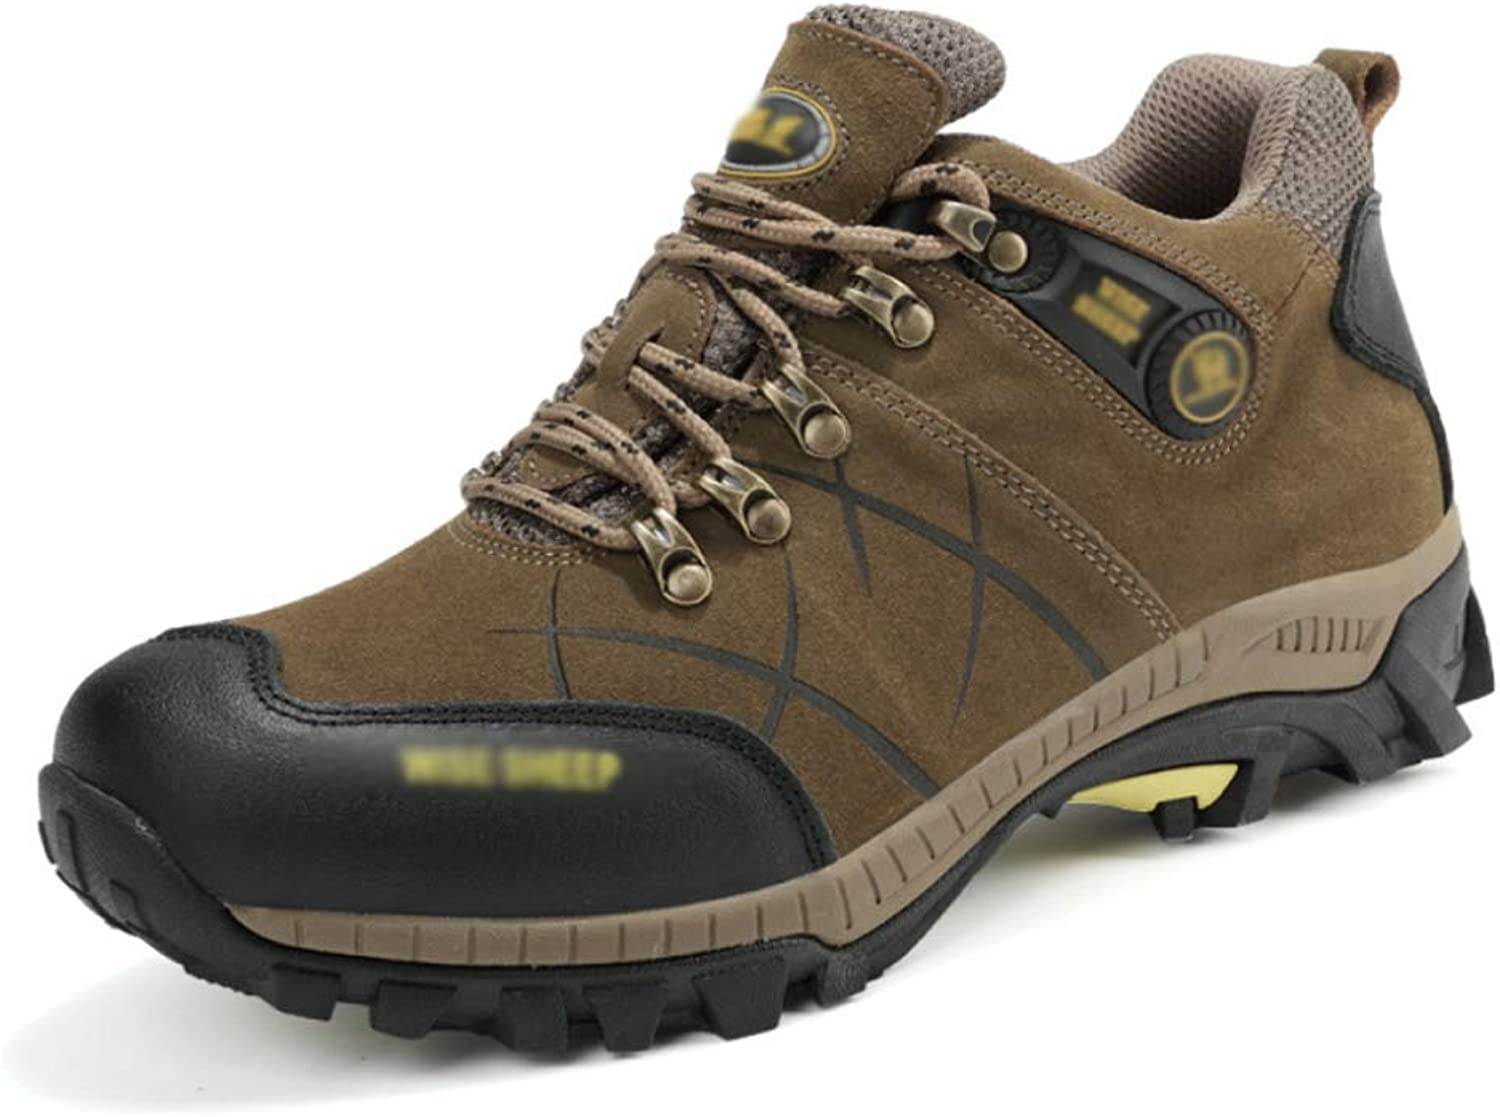 Hiking shoes Mens Autumn Trekking Sneakers Outdoor Mountain Sports Walking shoes Suitable For Men Casual Camping Boots